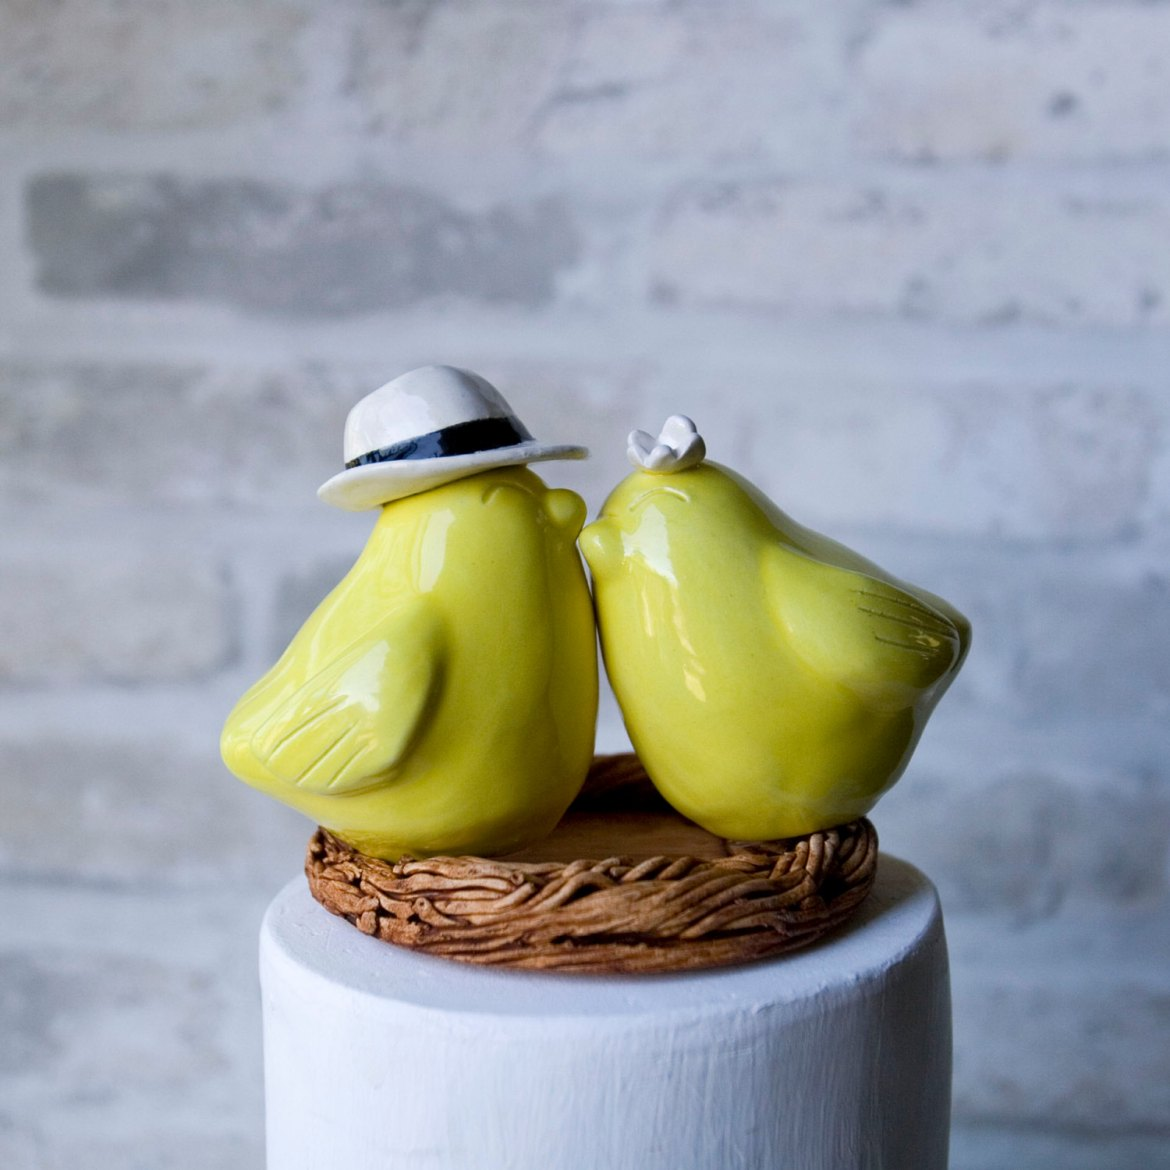 These Cute Love Birds Make Beautiful Cake Toppers for Weddings